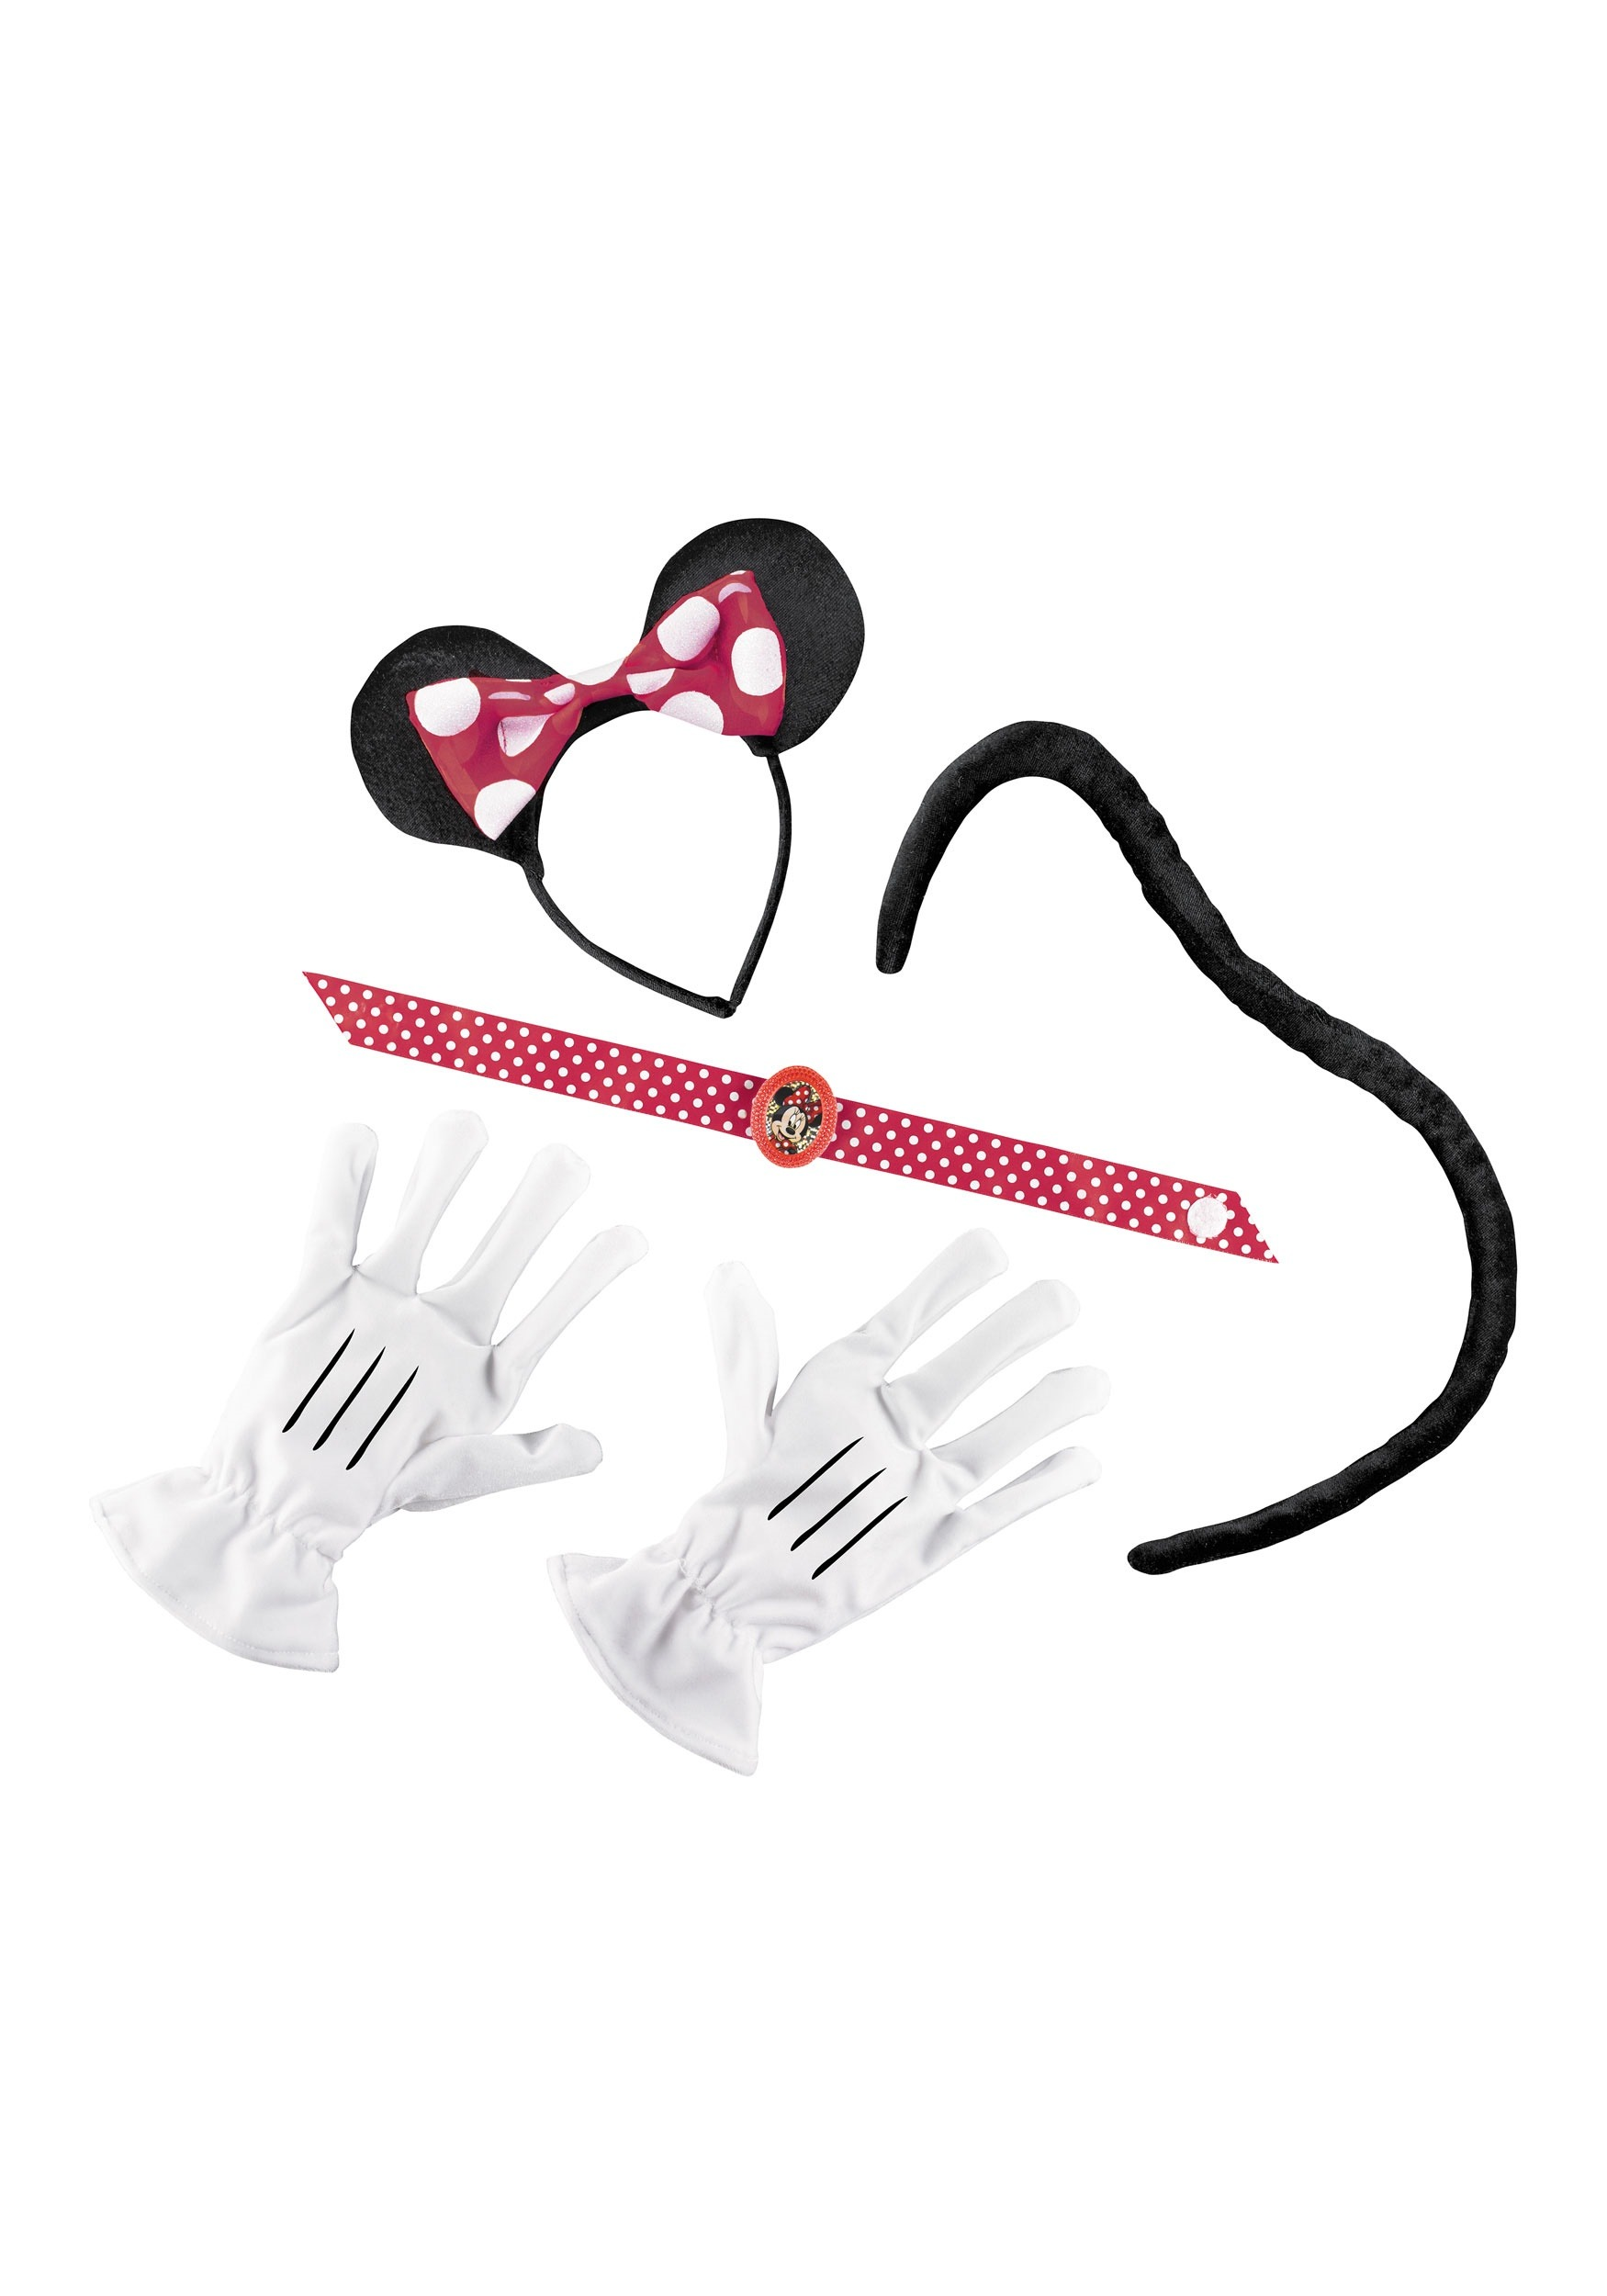 Red Minnie Mouse Accessories Kit for Women